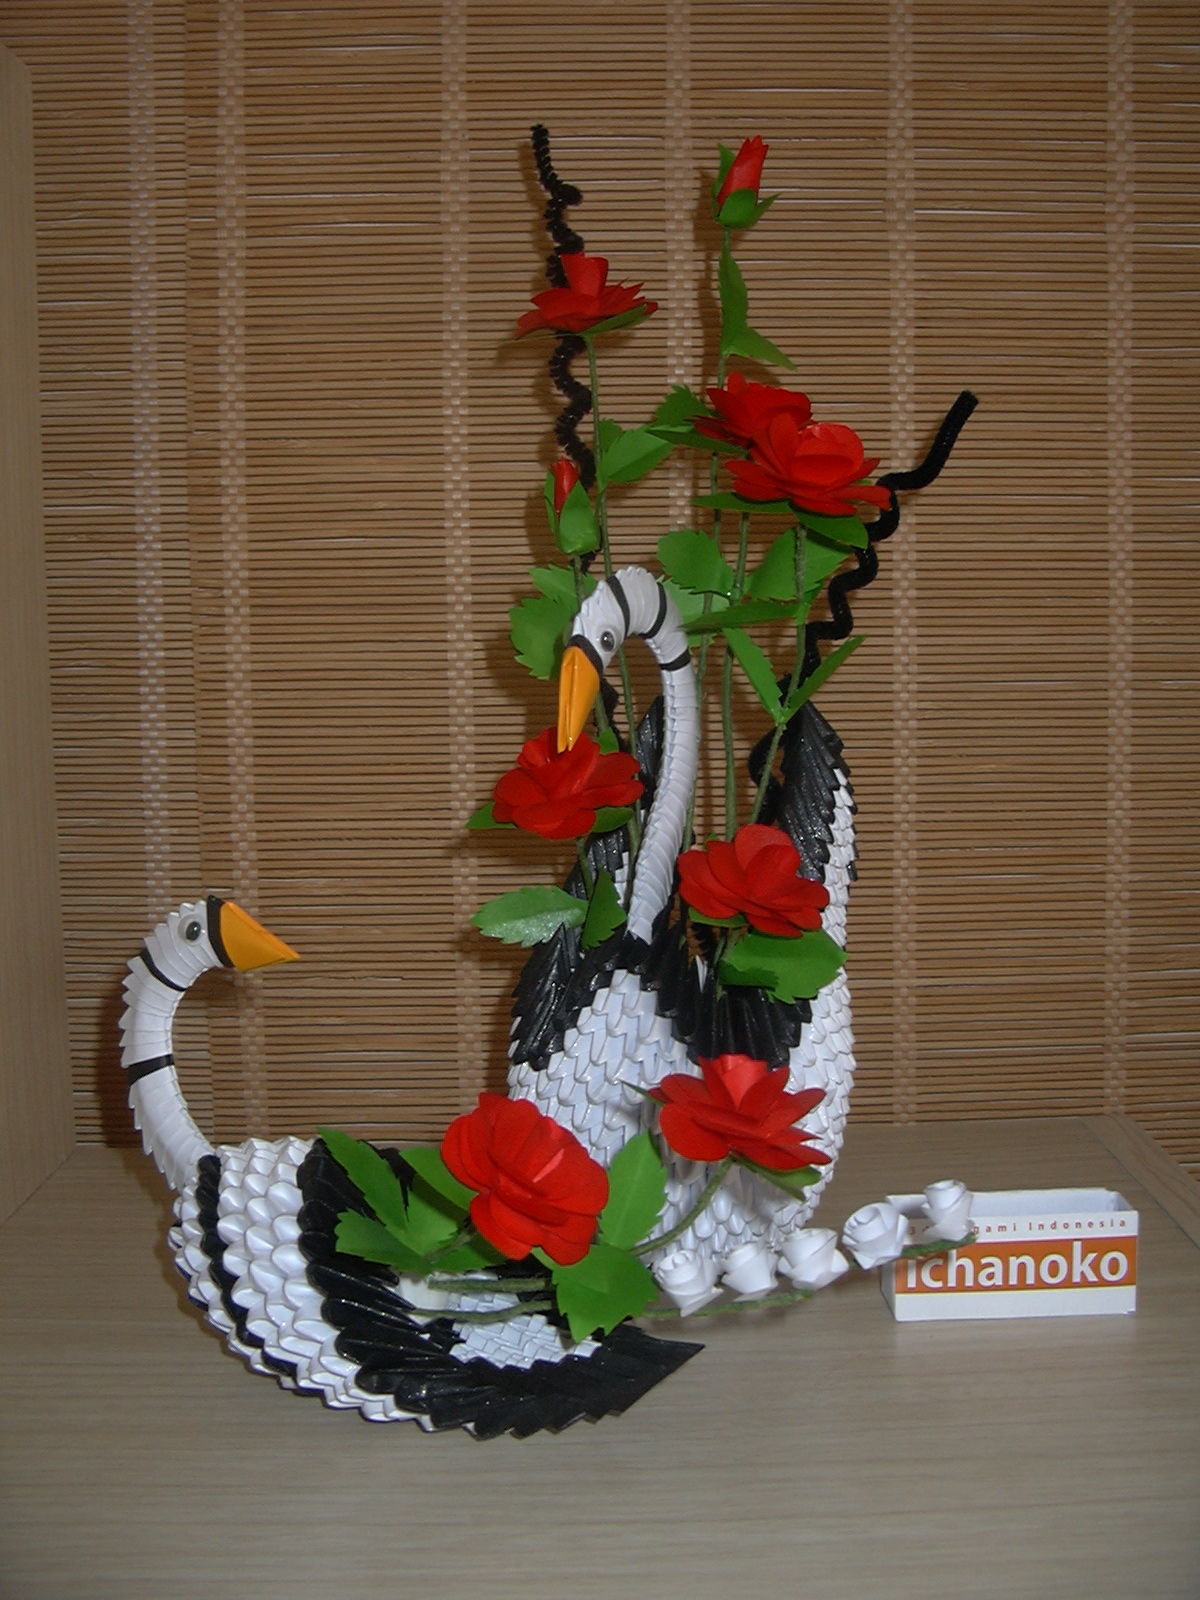 ICHANOKO 3D ORIGAMI INDONESIA: Model 3d origami - DECORATION - photo#43